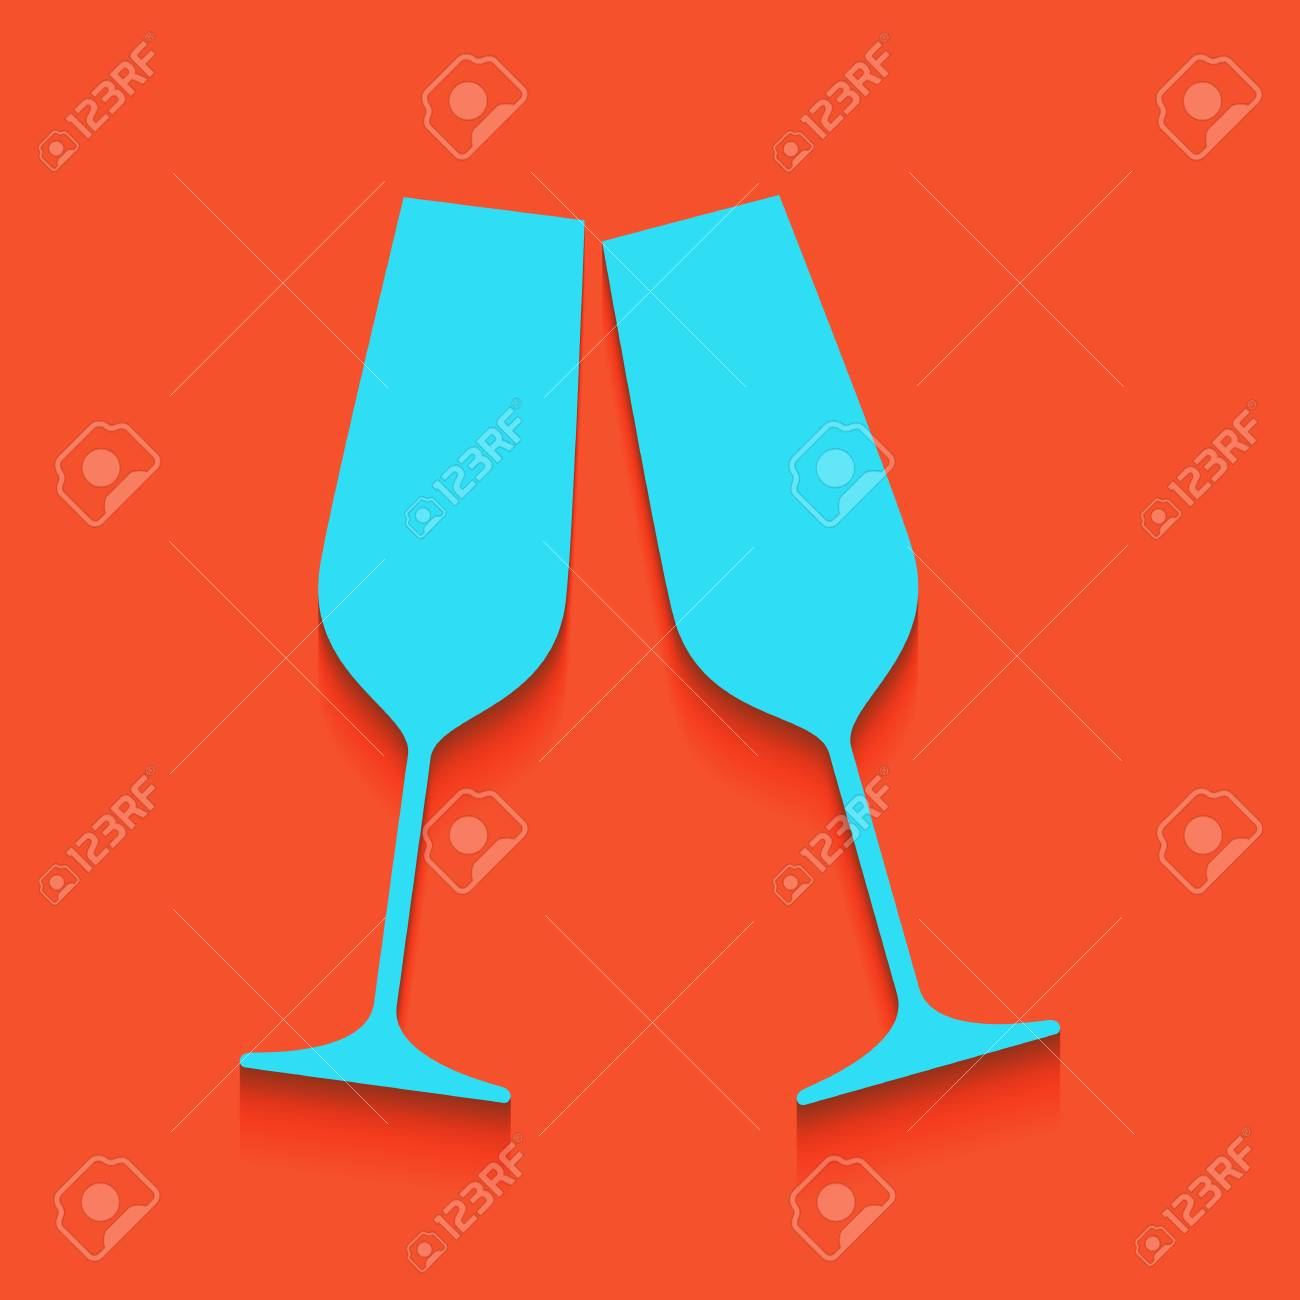 5ae49d1db9 Sparkling champagne glasses. Vector. Whitish icon on brick wall as  background. Stock Vector